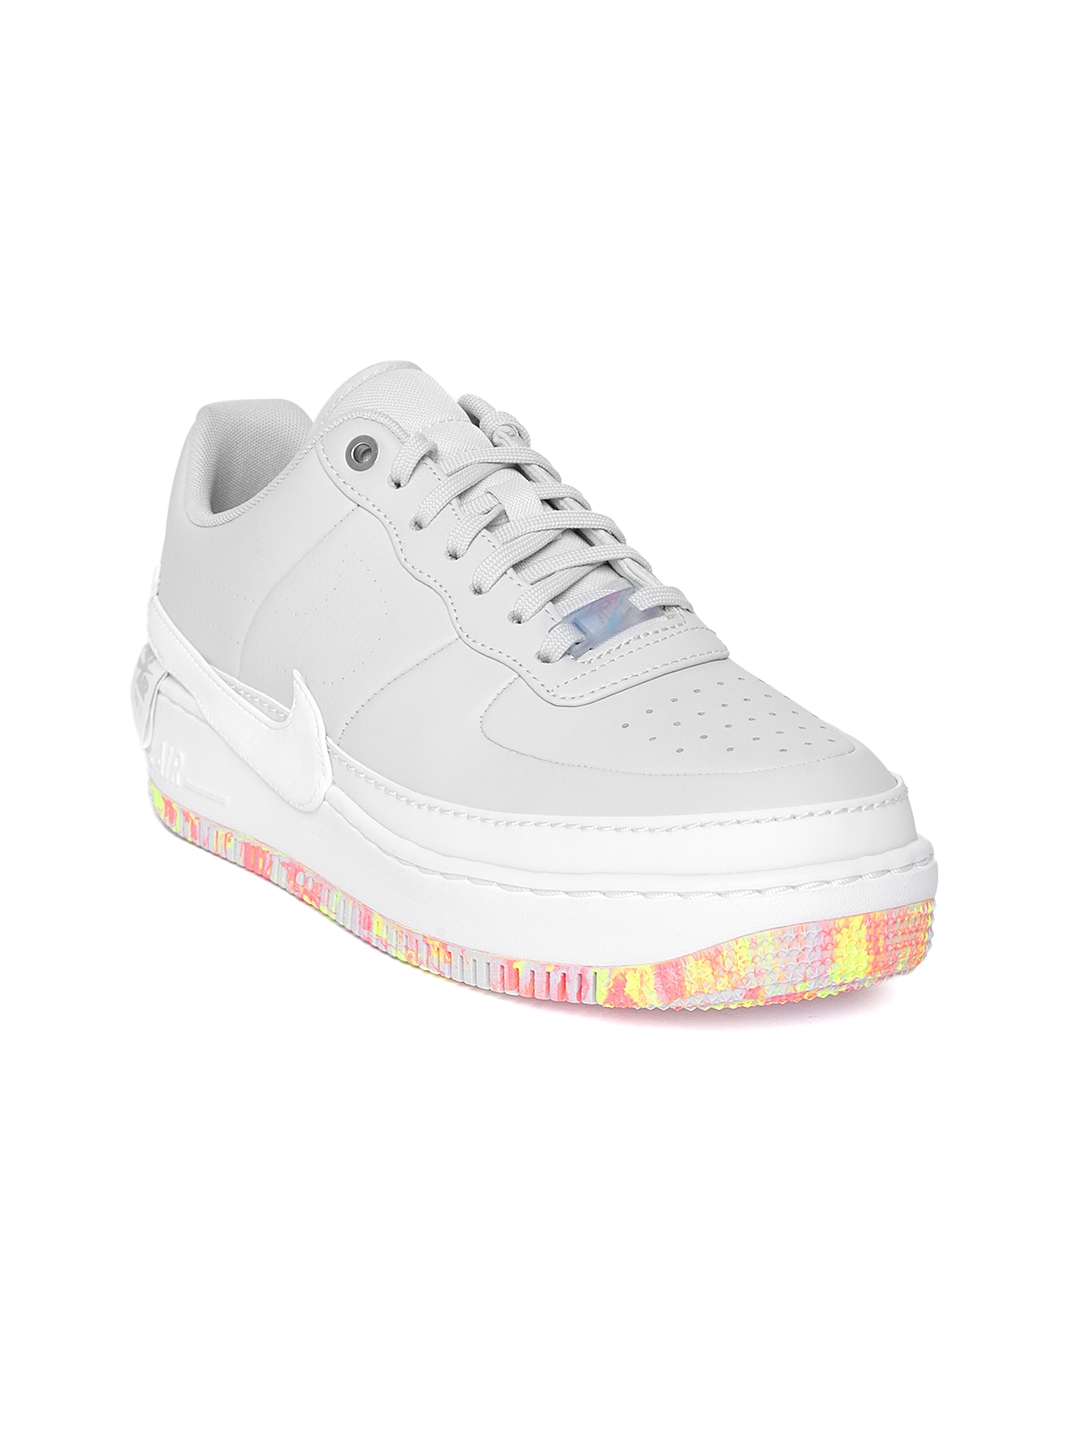 competitive price 4f23d 6b339 Nike Women Grey Air Force 1 Jester XX Print Leather Basketball Shoes